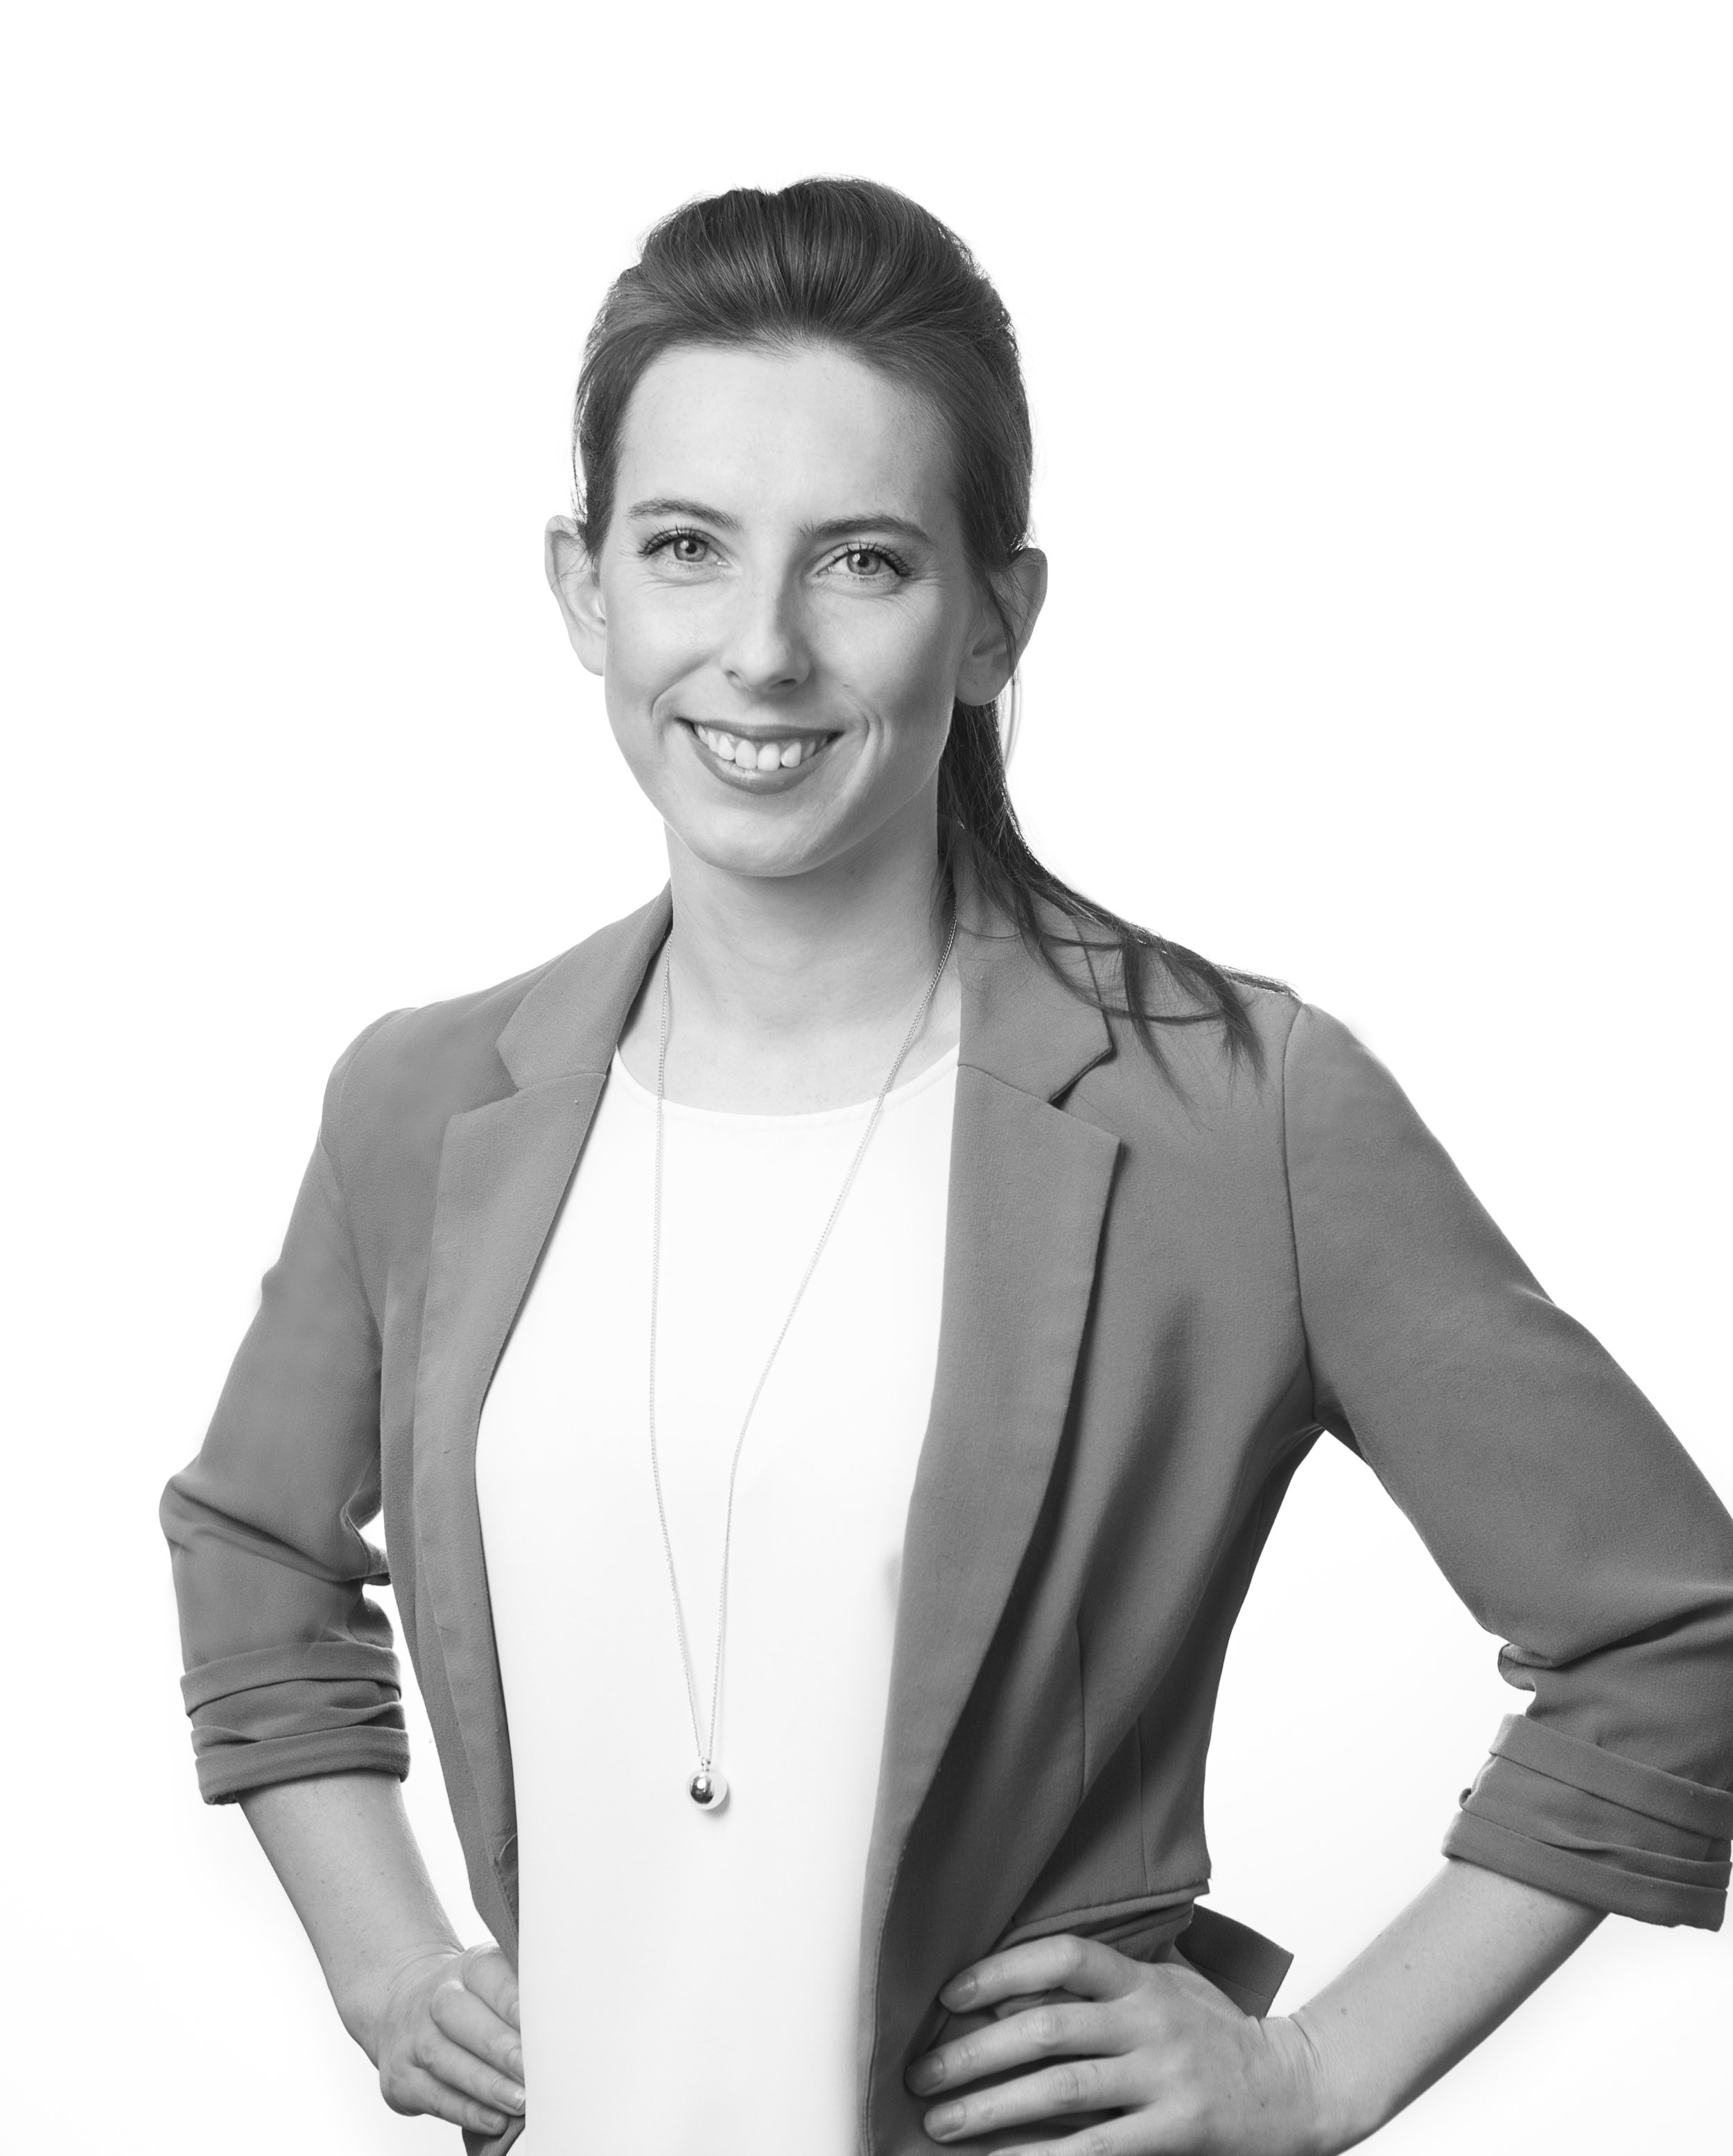 """Hannah Capes, BSc (Hons)    Research Director    hannah@empiricaresearch.com.au   Hannah has spent most of her working life in market research, starting out as a CATI interviewer in 2005. As a result of her long exposure to the coalface of the industry, she is passionate about well-designed research that optimises the respondent experience, and organised and efficient project management that streamlines all aspects of a research project.  Hannah completed her BSc (Hons) from the University in Melbourne in 2009 with a major in Applied Statistics. Her Honours thesis used nonlinear mixed-effects models to test theoretically derived models of tree growth, and as part of a vacation scholarship conducted between her undergraduate and Honours studies, she explored evidence for """"tanking"""" in order to gain priority draft picks by using logistic regression in the context of historic AFL results.  Outside of work, Hannah is a dedicated competitive All Star Cheerleader with Southern Cross Cheerleading. Her team, Legacy, placed second at the World Cheerleading Championships in Florida in 2016."""